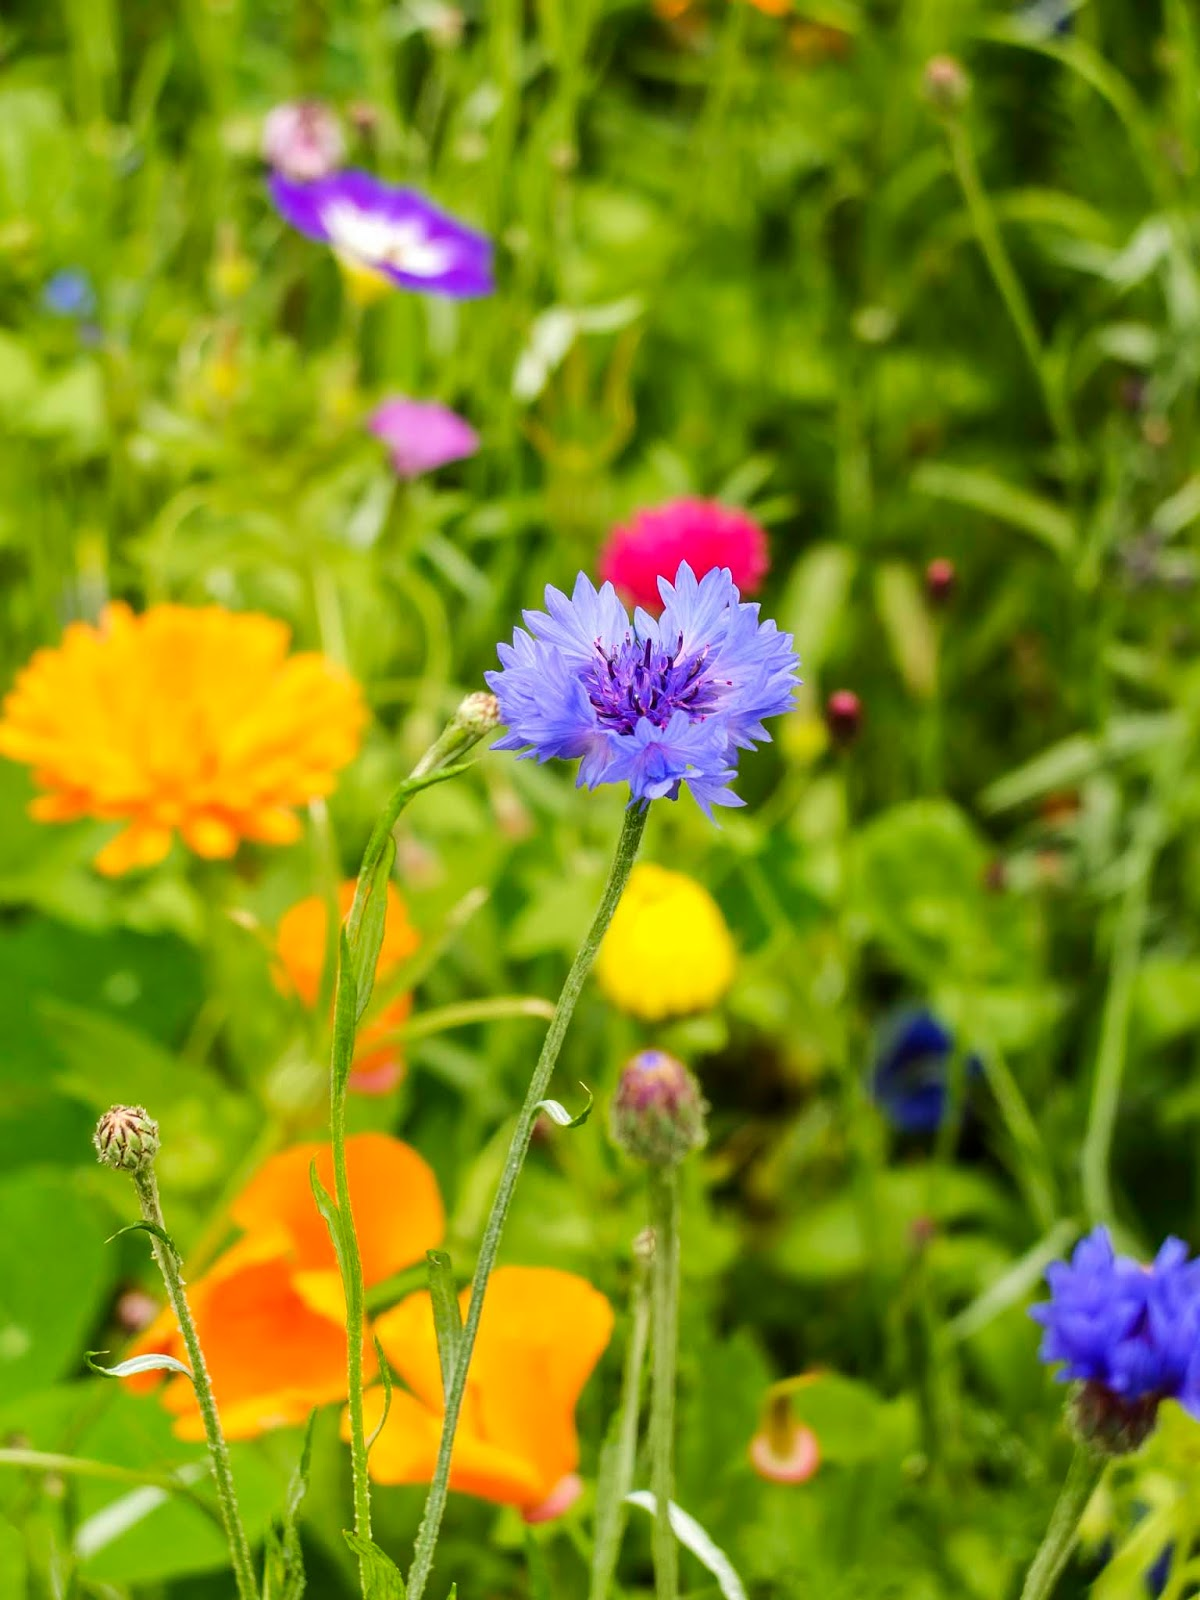 A close up of some wildflowers in a colourful garden.